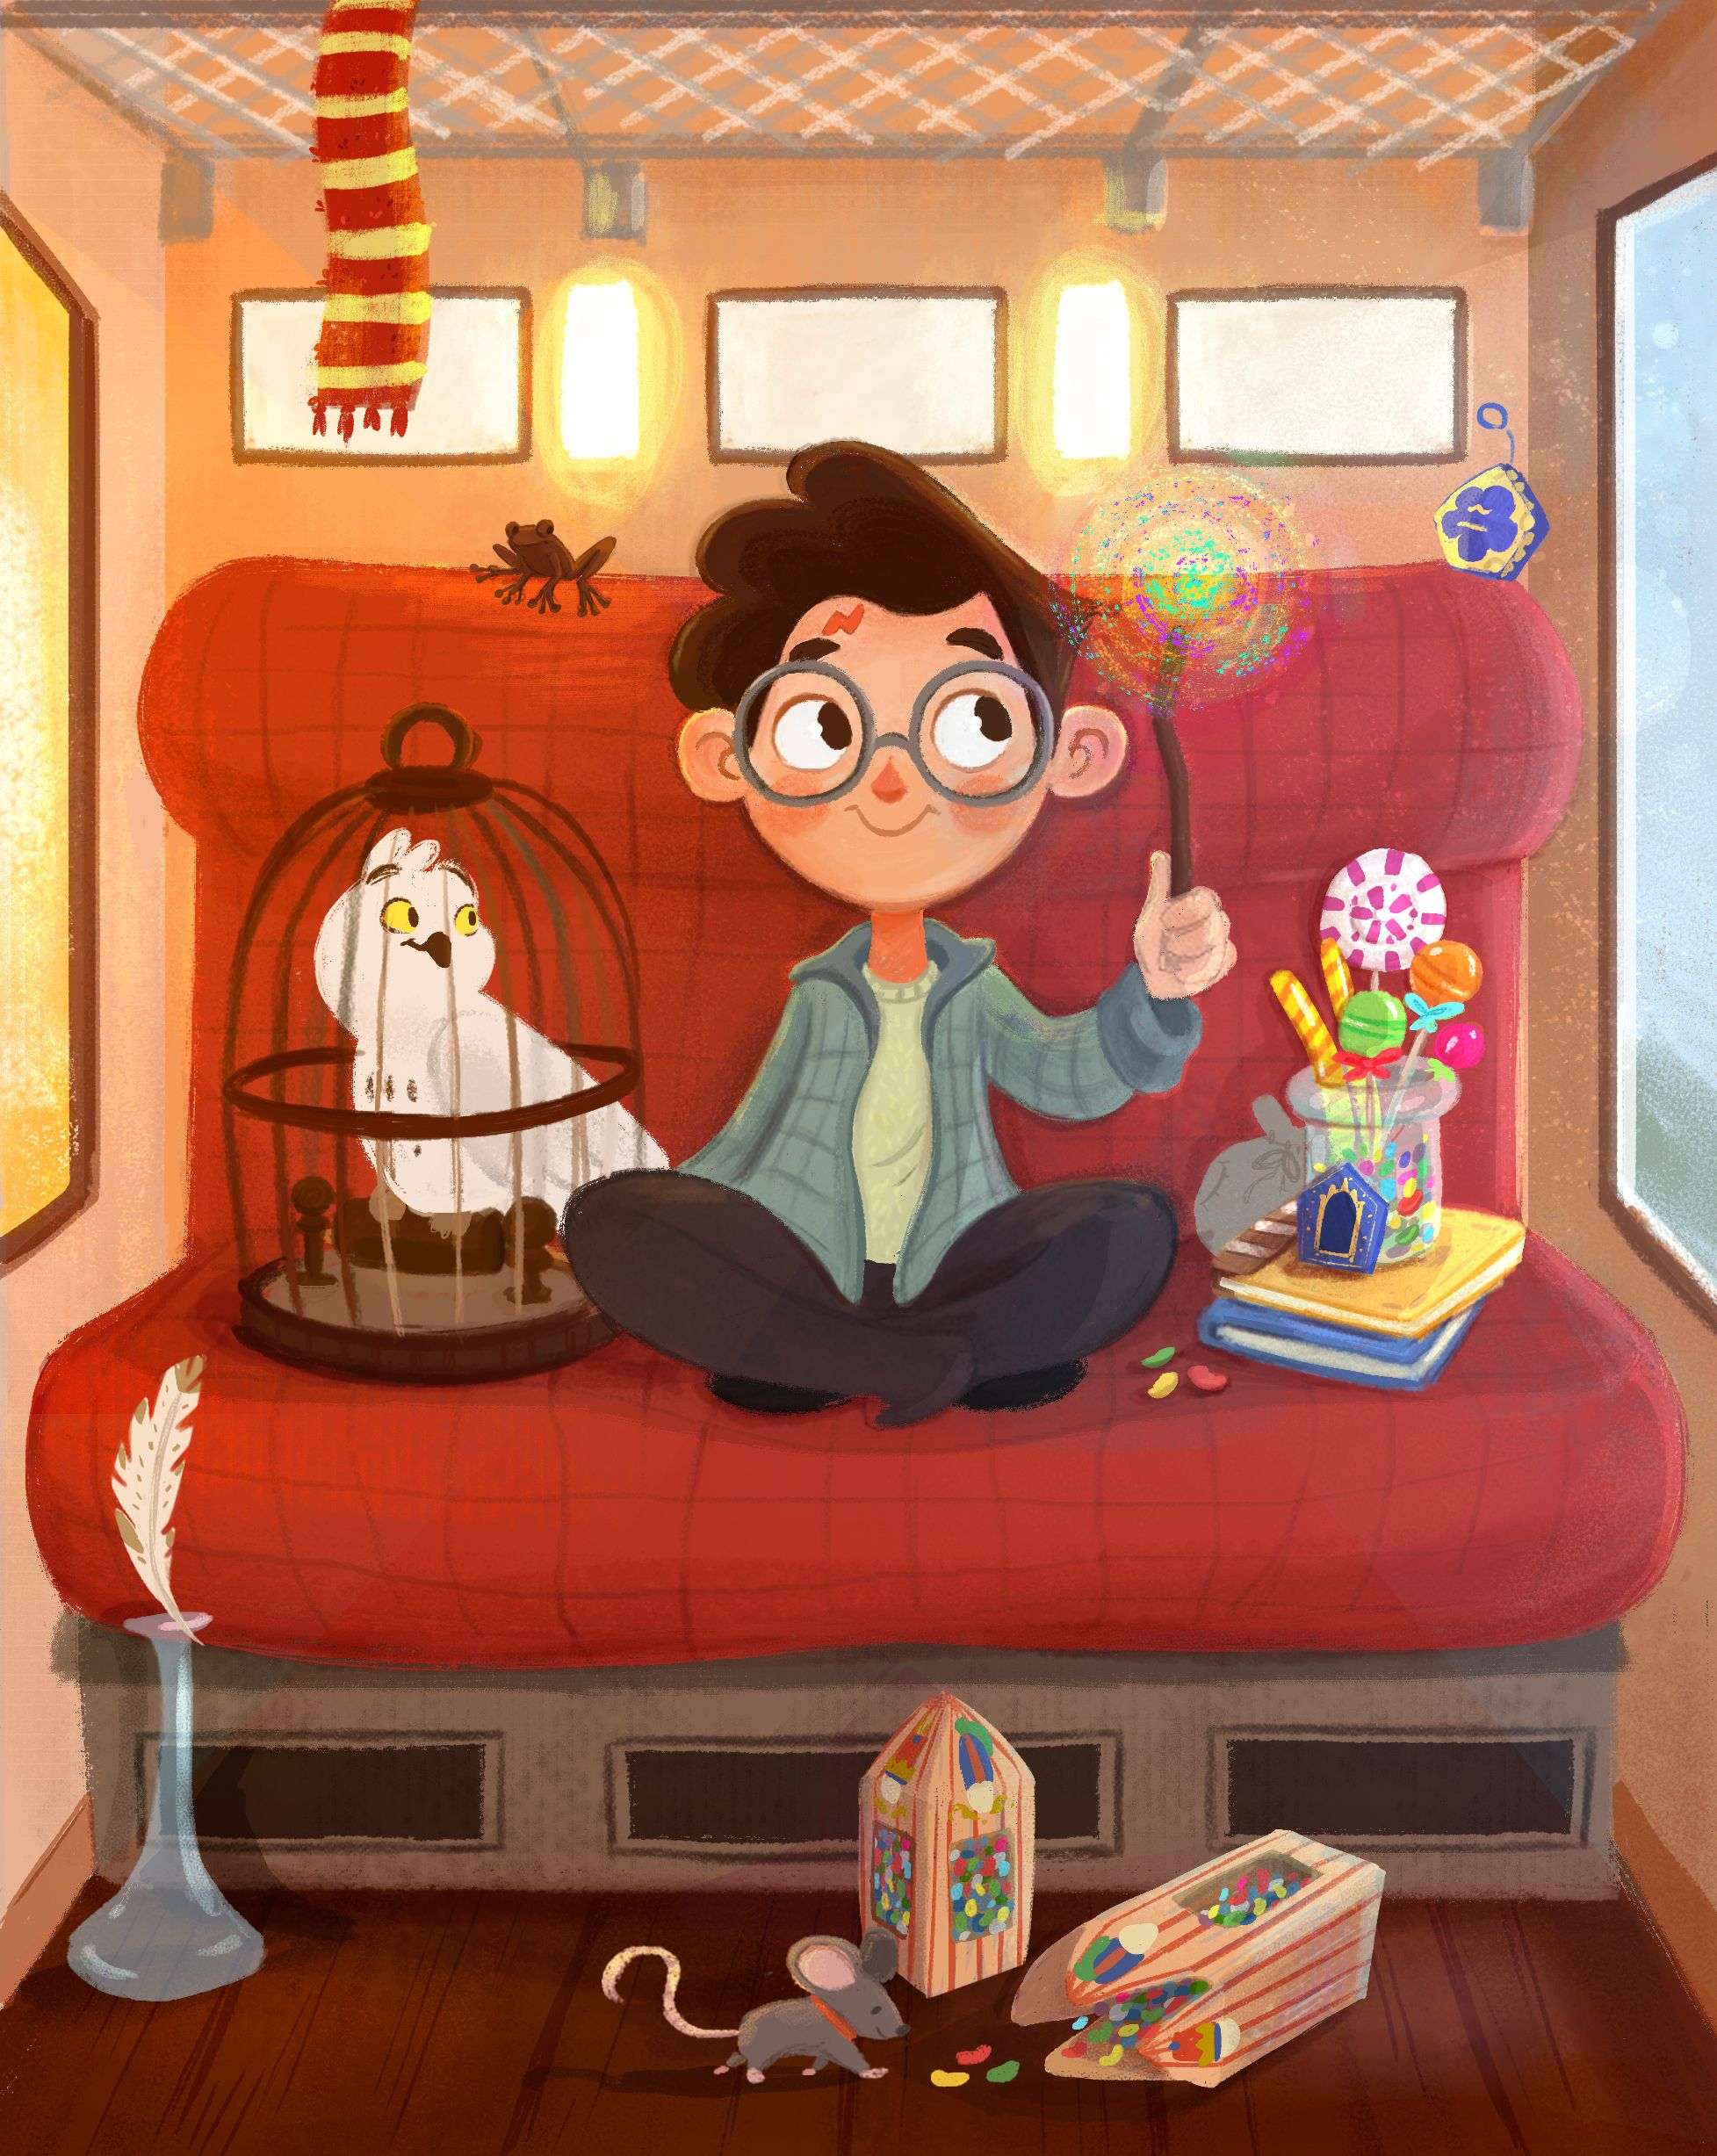 Harry Potter Illustration Made By Me Alicespicuzza Harrypotter Harrypotterillustration